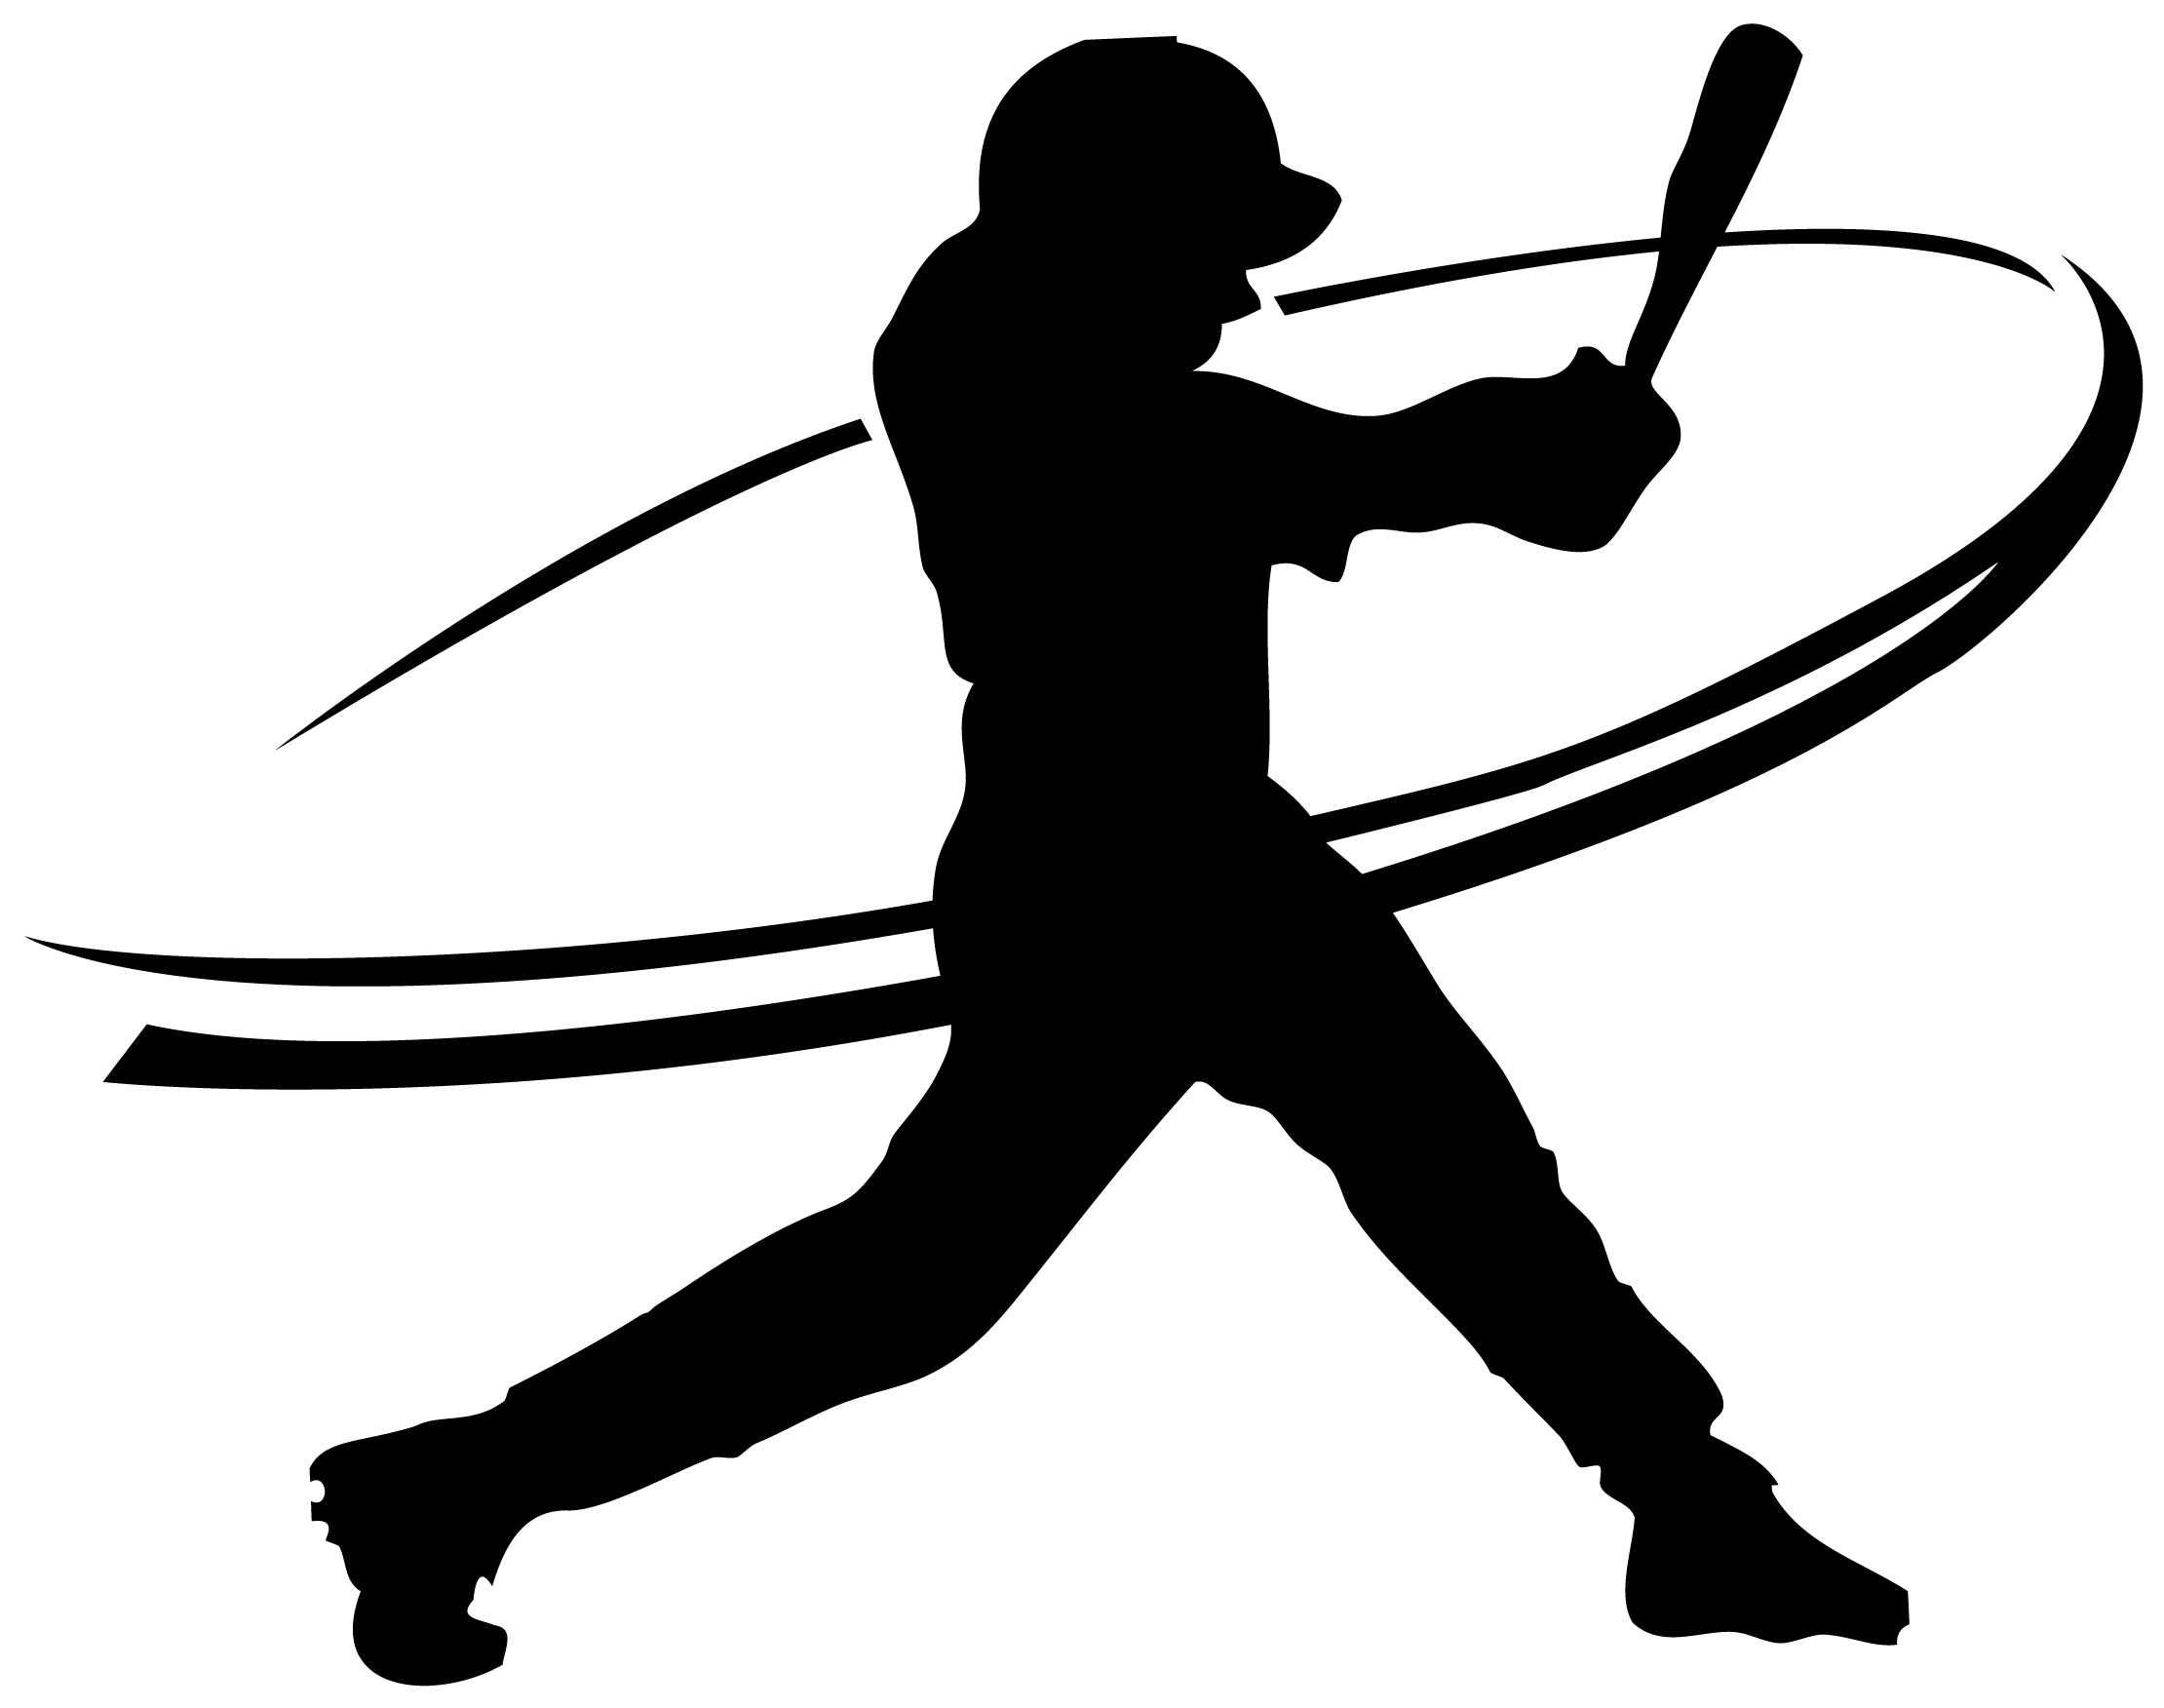 11 Softball Player Silhouette Vector Images